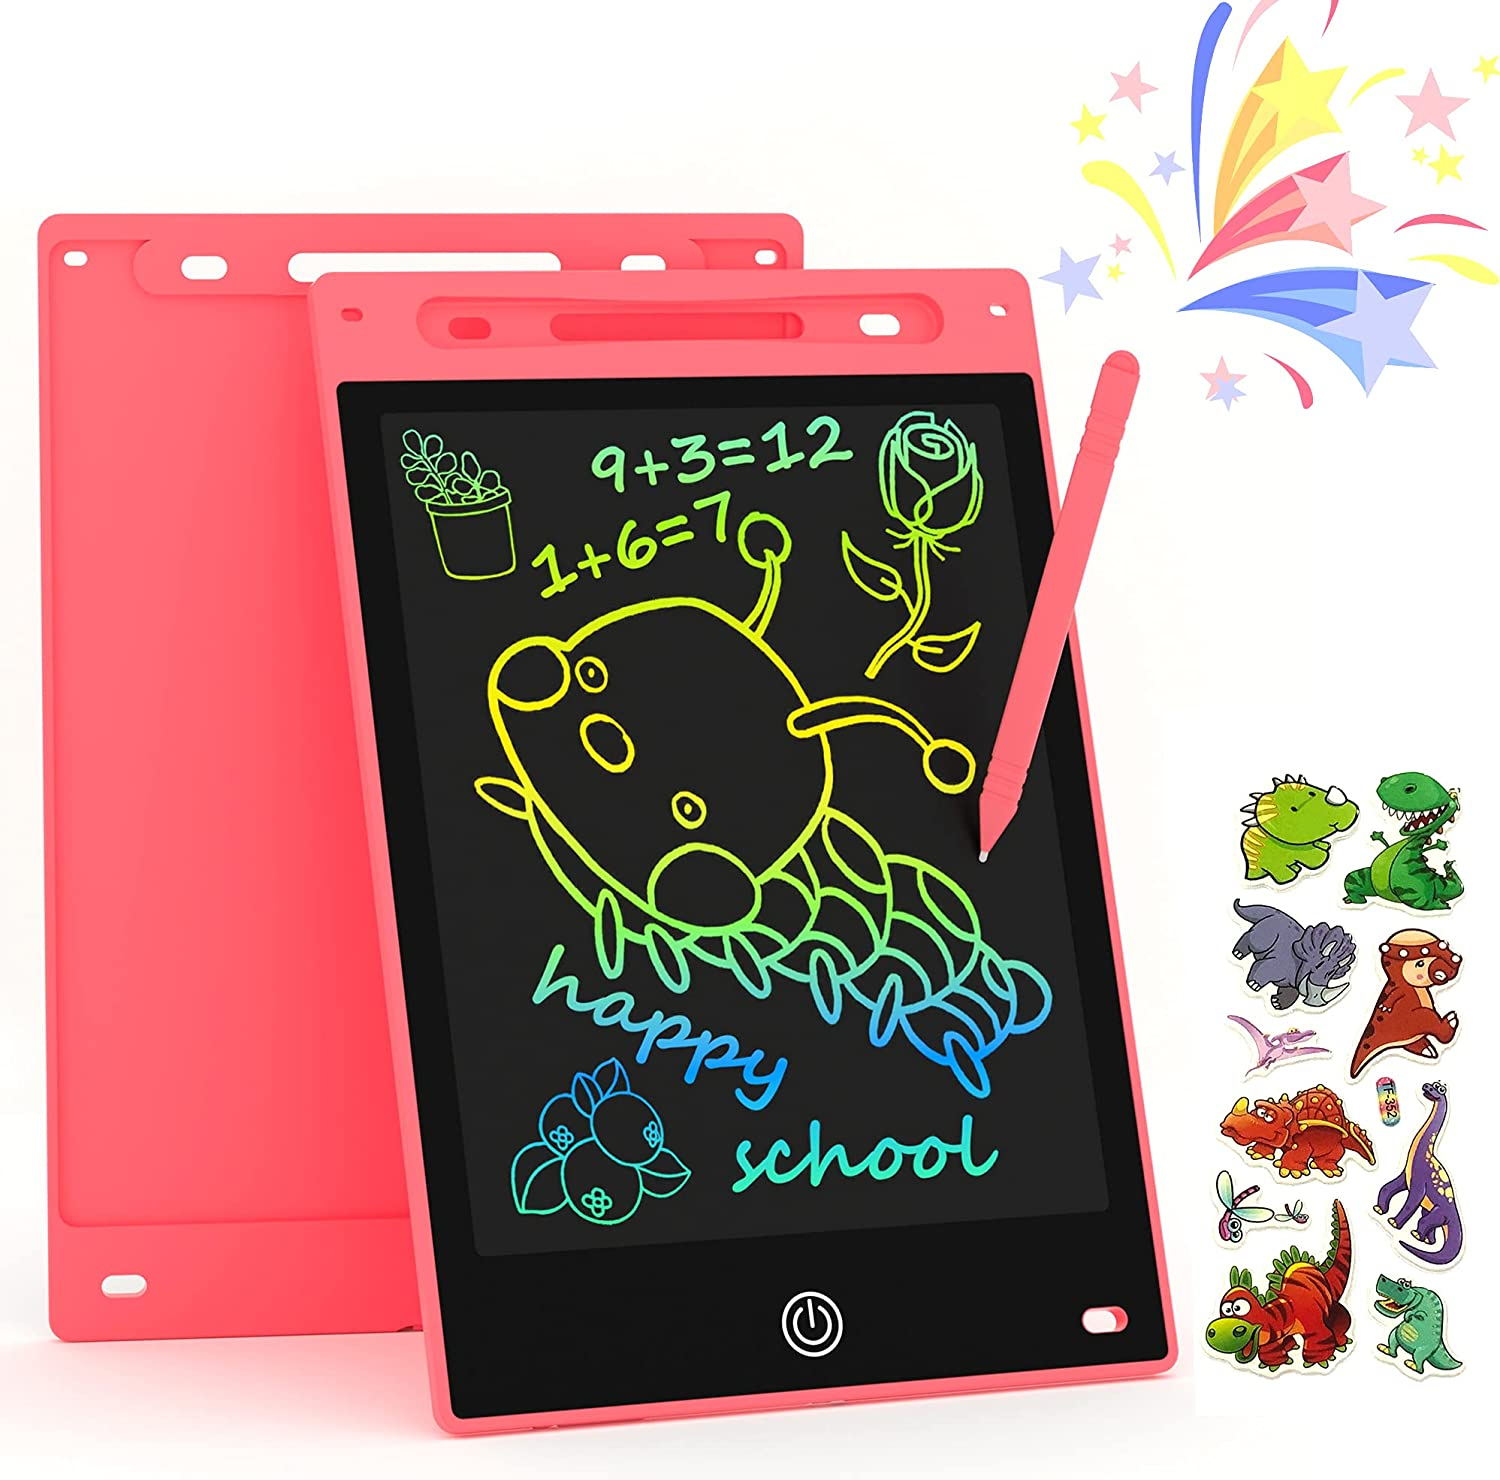 LARISO Toys for 3-6 Years Old Girls Boys, LCD Writing Tablet 10 Inch Doodle Board, Electronic Drawing Tablet Drawing Pads, Educational Birthday Gift for 3 4 5 6 7 8 Years Old Kids Toddler (Pink)